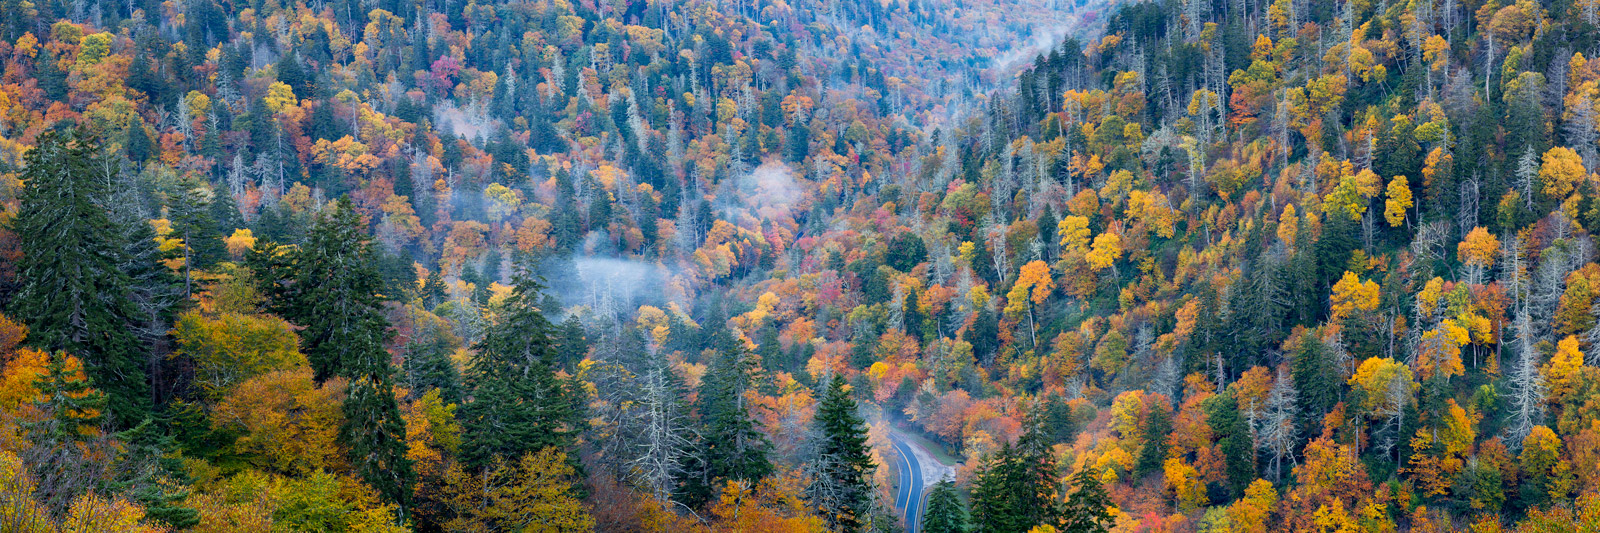 Tennessee, Smoky Mountains, Fall, Color, Road, limited edition, photograph, fine art, landscape, fall color, photo